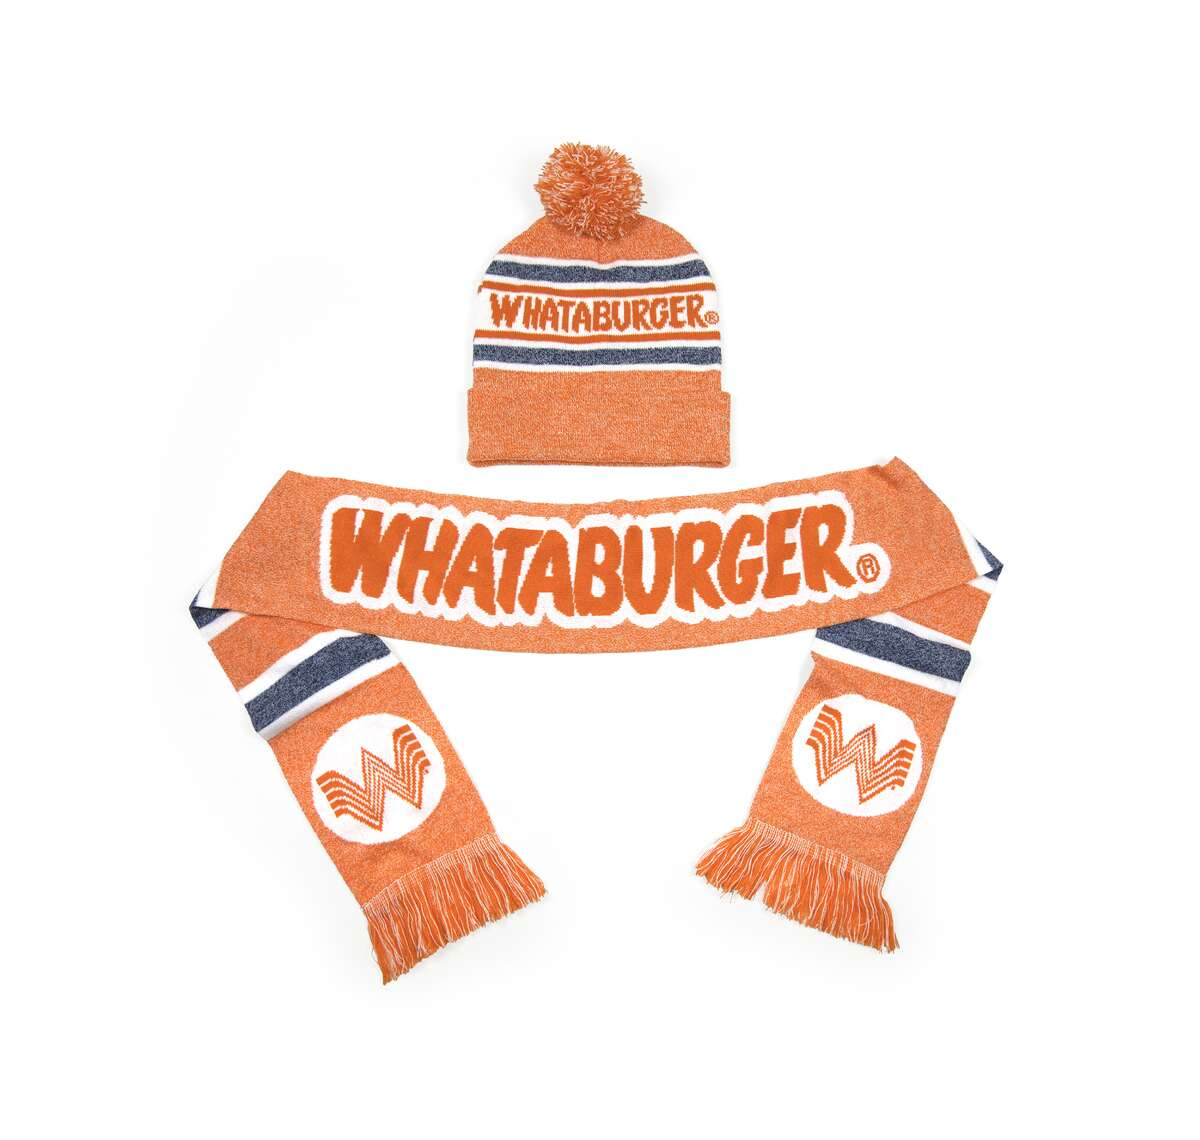 Houston might not get that cold but a sweaty head might be worth it for a Whataburger beanie.